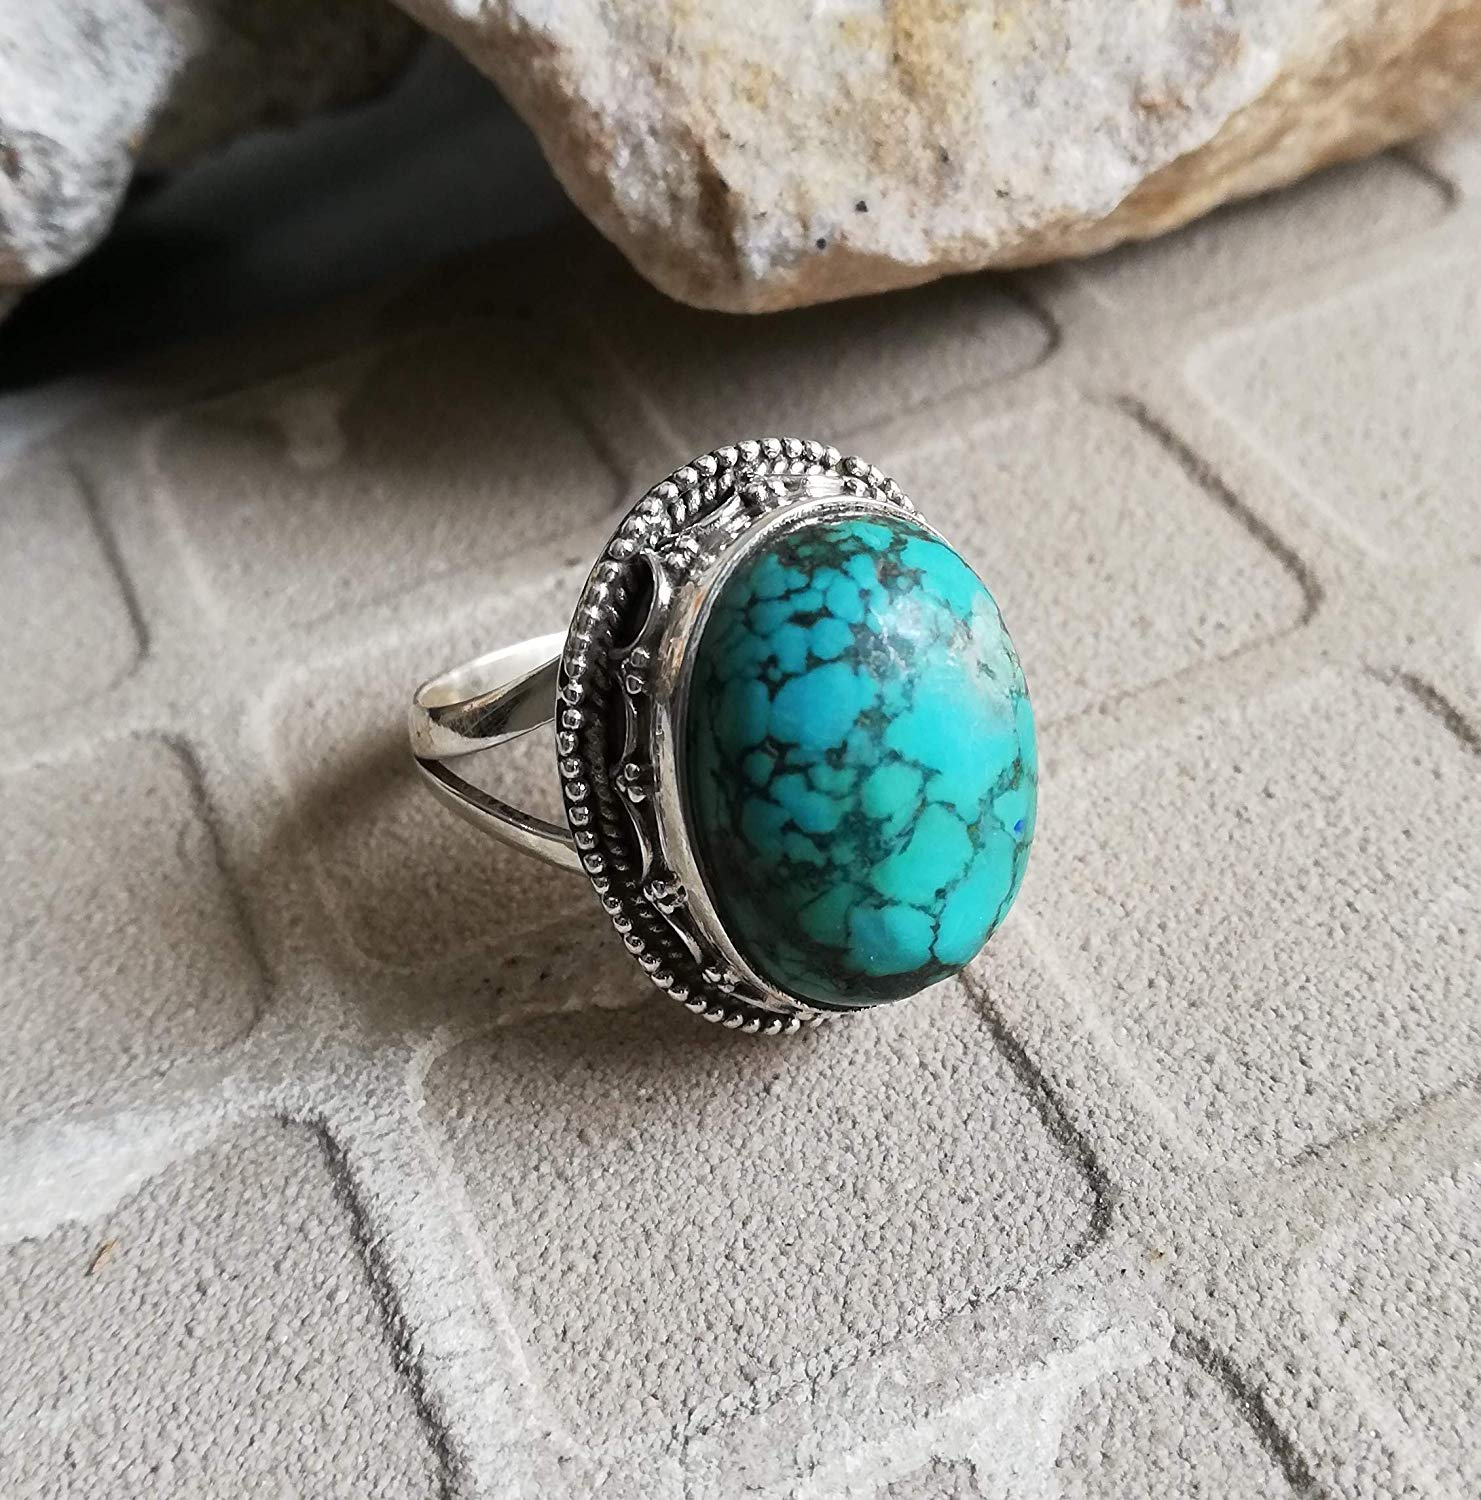 Turquoise Ring, 925 Sterling Silver, Sister Gift Jewelry, Delicate Ring, Extraordinary Ring, Latest Ring, Ultimate Ring, Ocean Charm, Boho Bride Ring, Fashionable Ring, Unique Piece, US All Size Ring